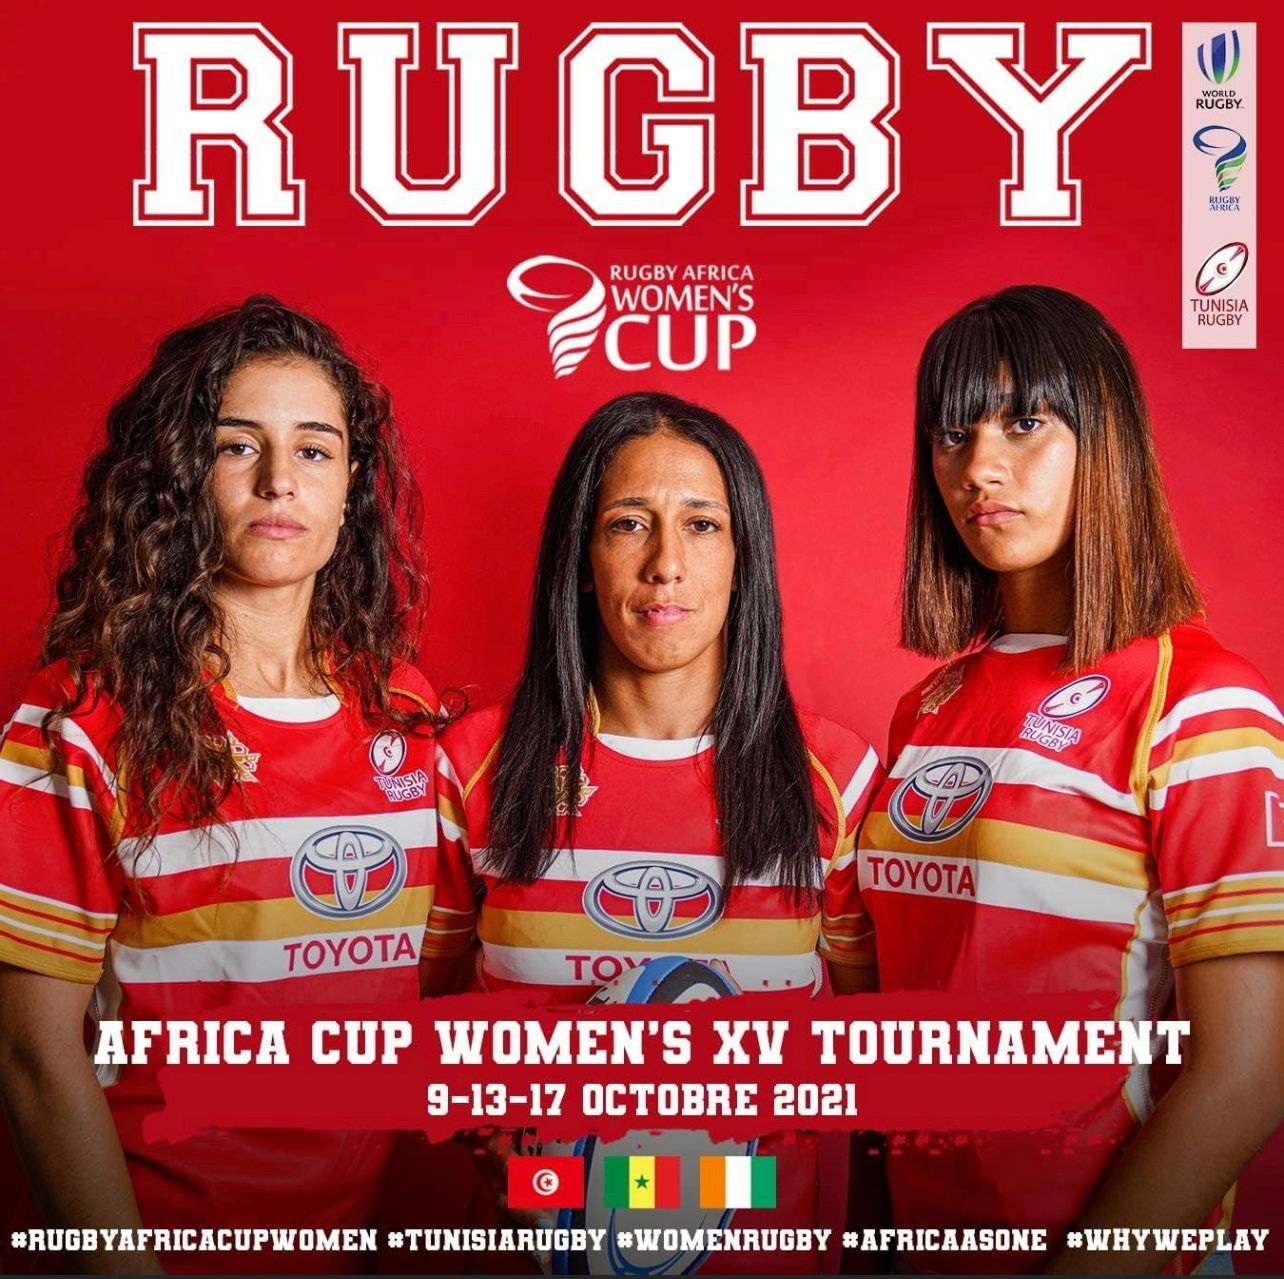 Dates for Rugby Africa Cup Women's 15s tournament announced